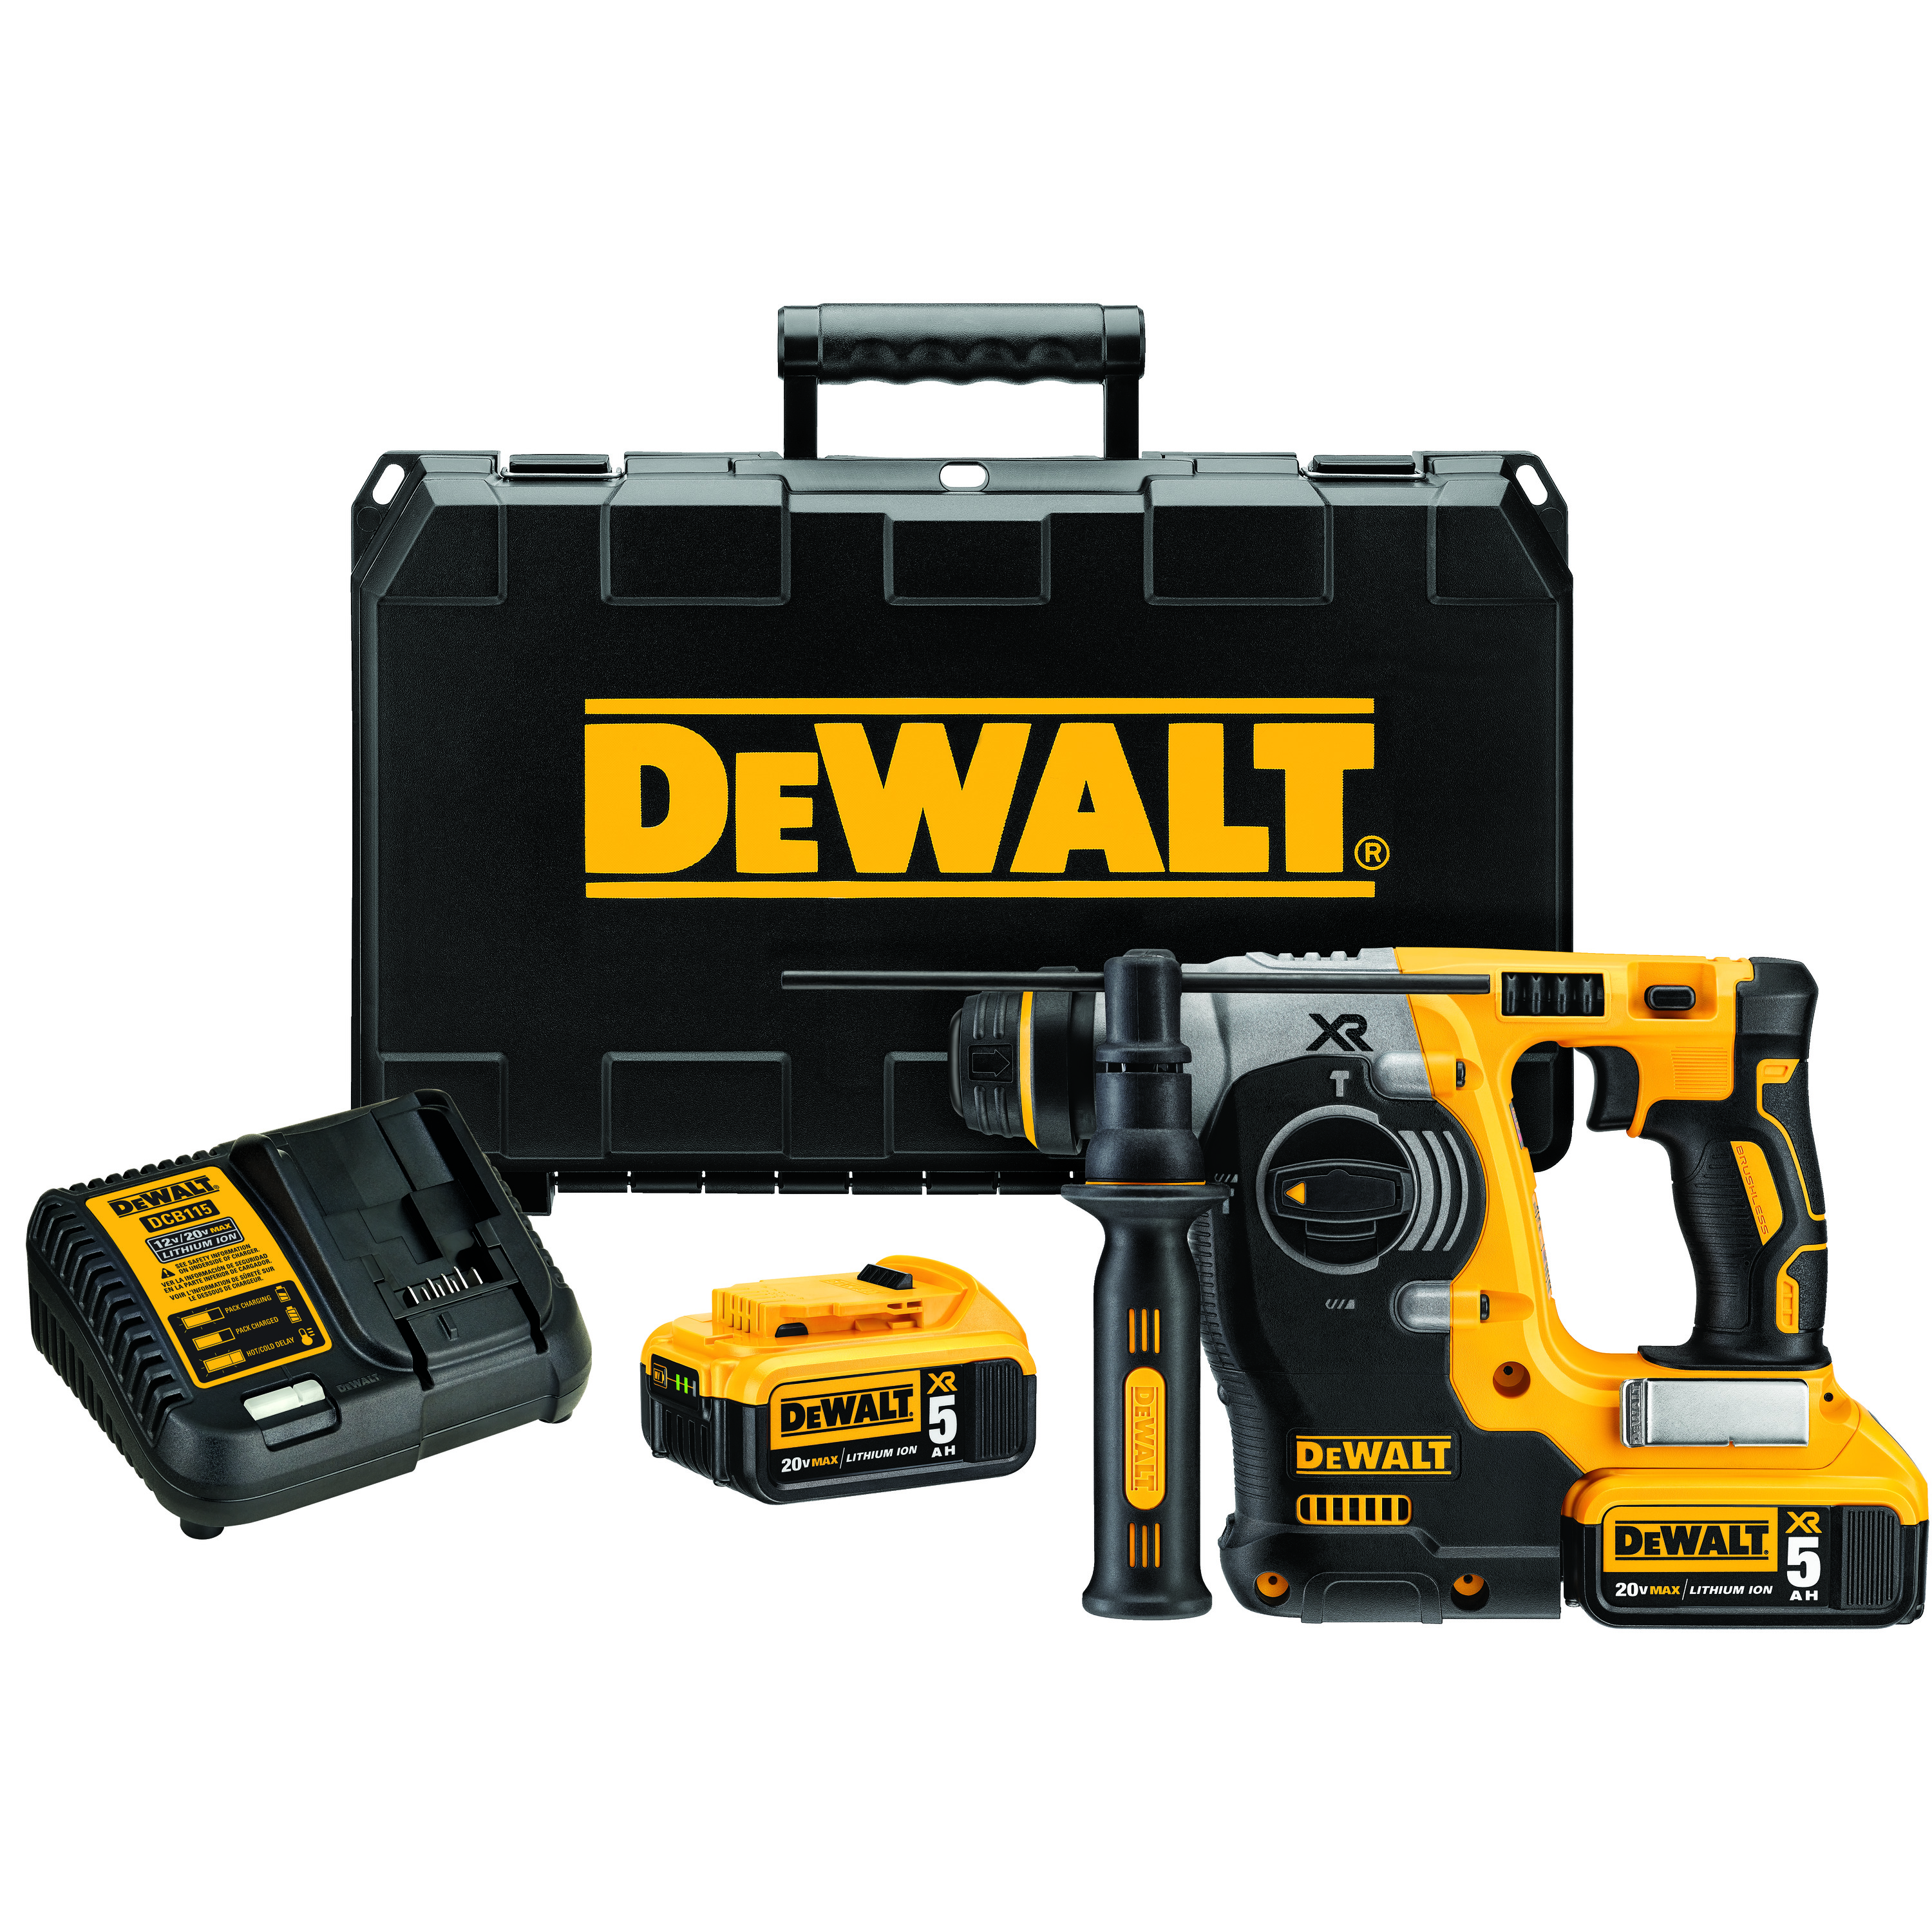 DeWALT® 20V MAX* DCH273P2 XR™ High Performance Cordless Rotary Hammer Kit, 1 in SDS Plus® Chuck, 20 VAC, 0 to 1100 rpm No-Load, Lithium-Ion Battery